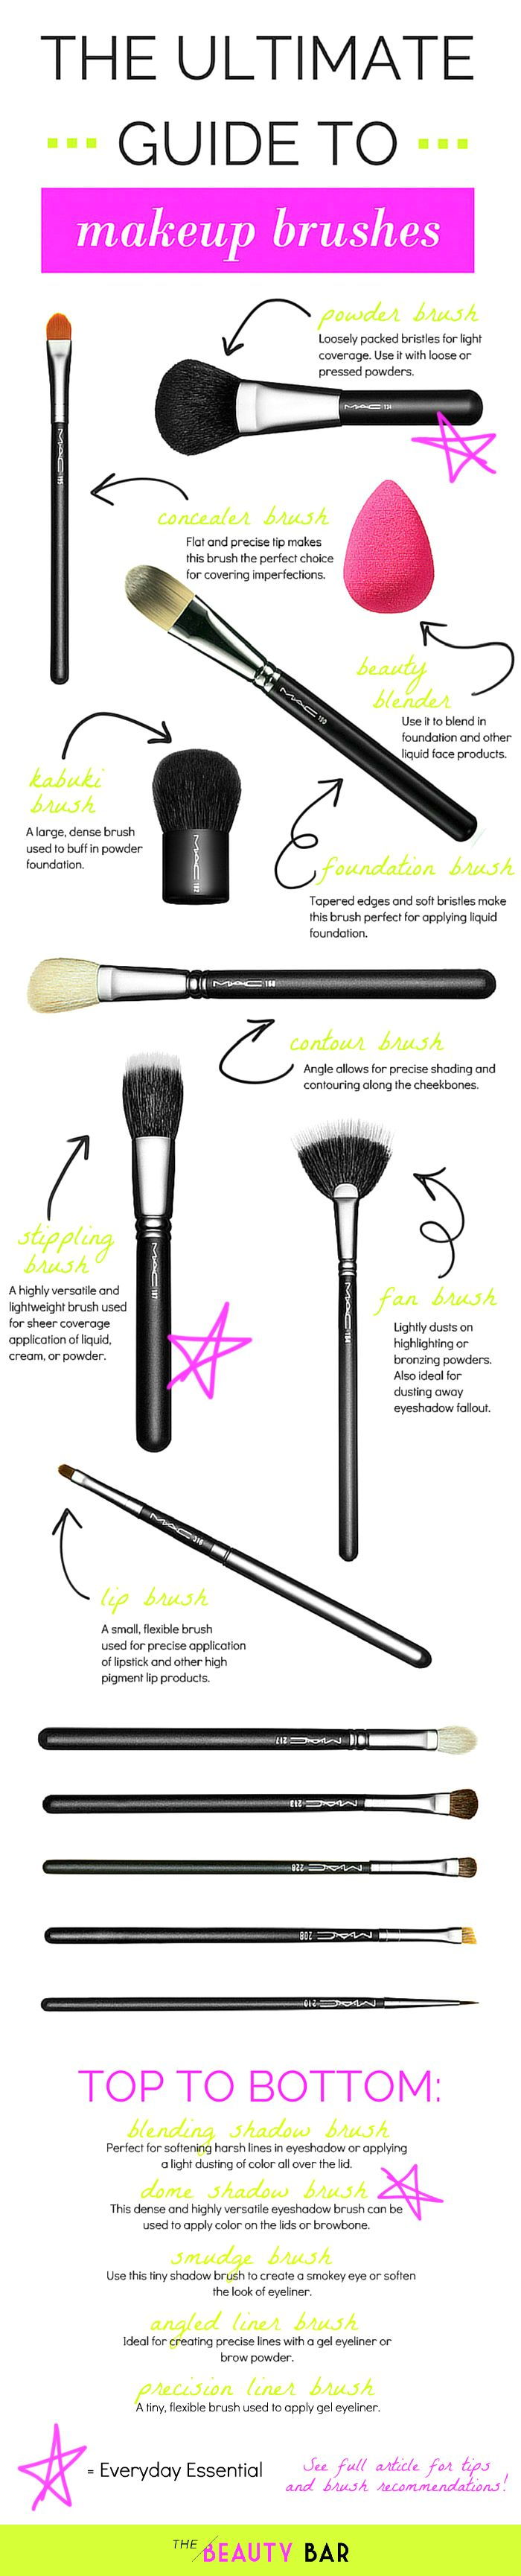 The Beauty Bar: The Ultimate Guide to Makeup Brushes